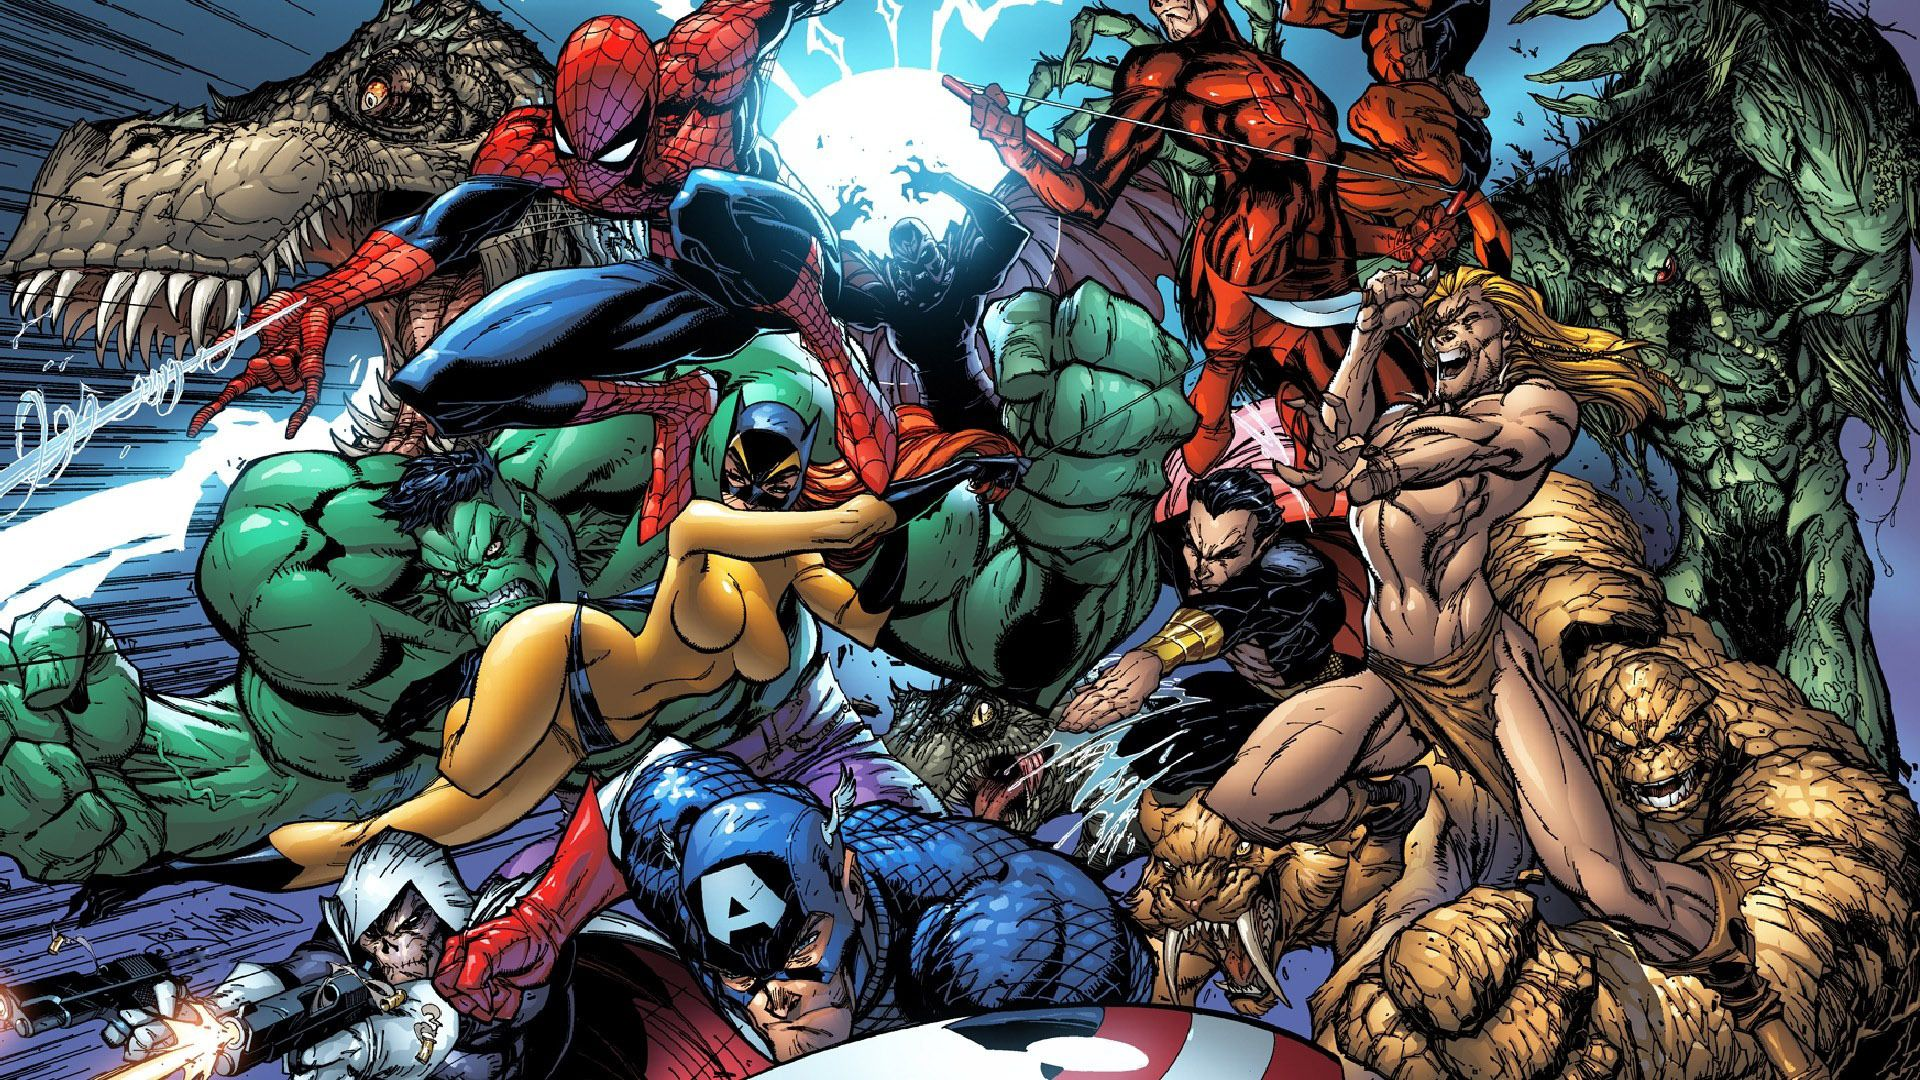 Marvel superheroes hd wallpaper marvel wallpaper comic wallpaper marvel superheroes hd wallpaper marvel wallpaper comic wallpaper superhero wallpaper voltagebd Choice Image